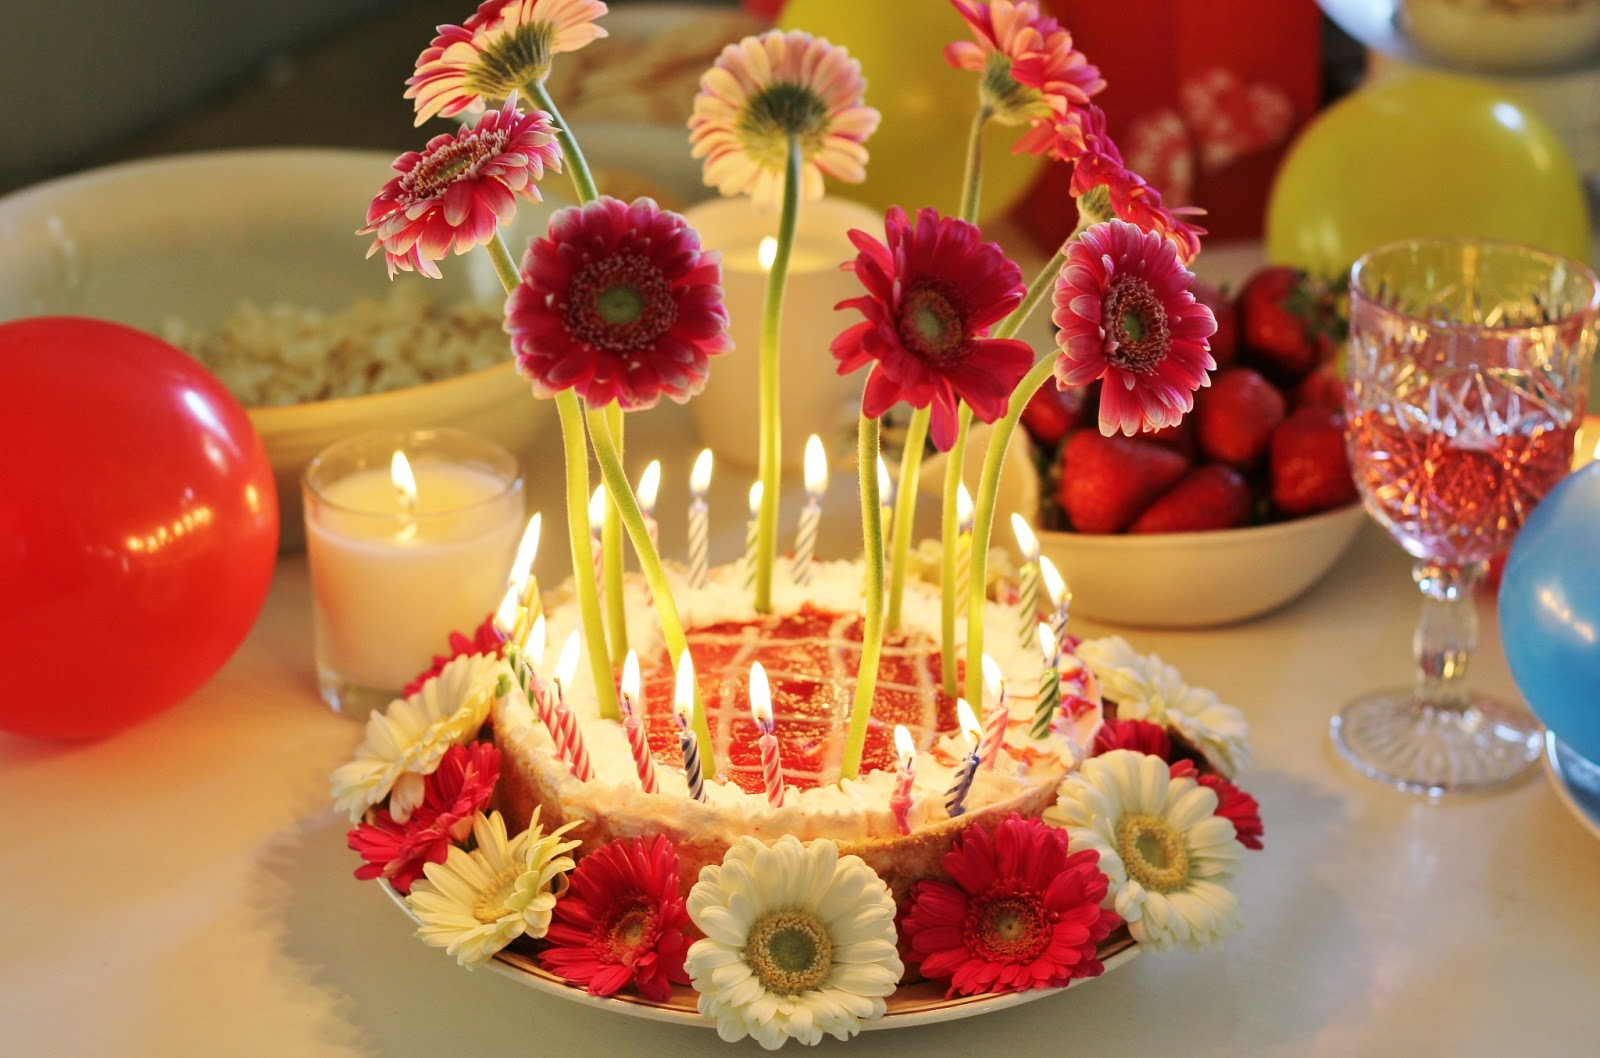 Happy Birthday Cakes And Flowers Through The BirthdayBirthday With Candles